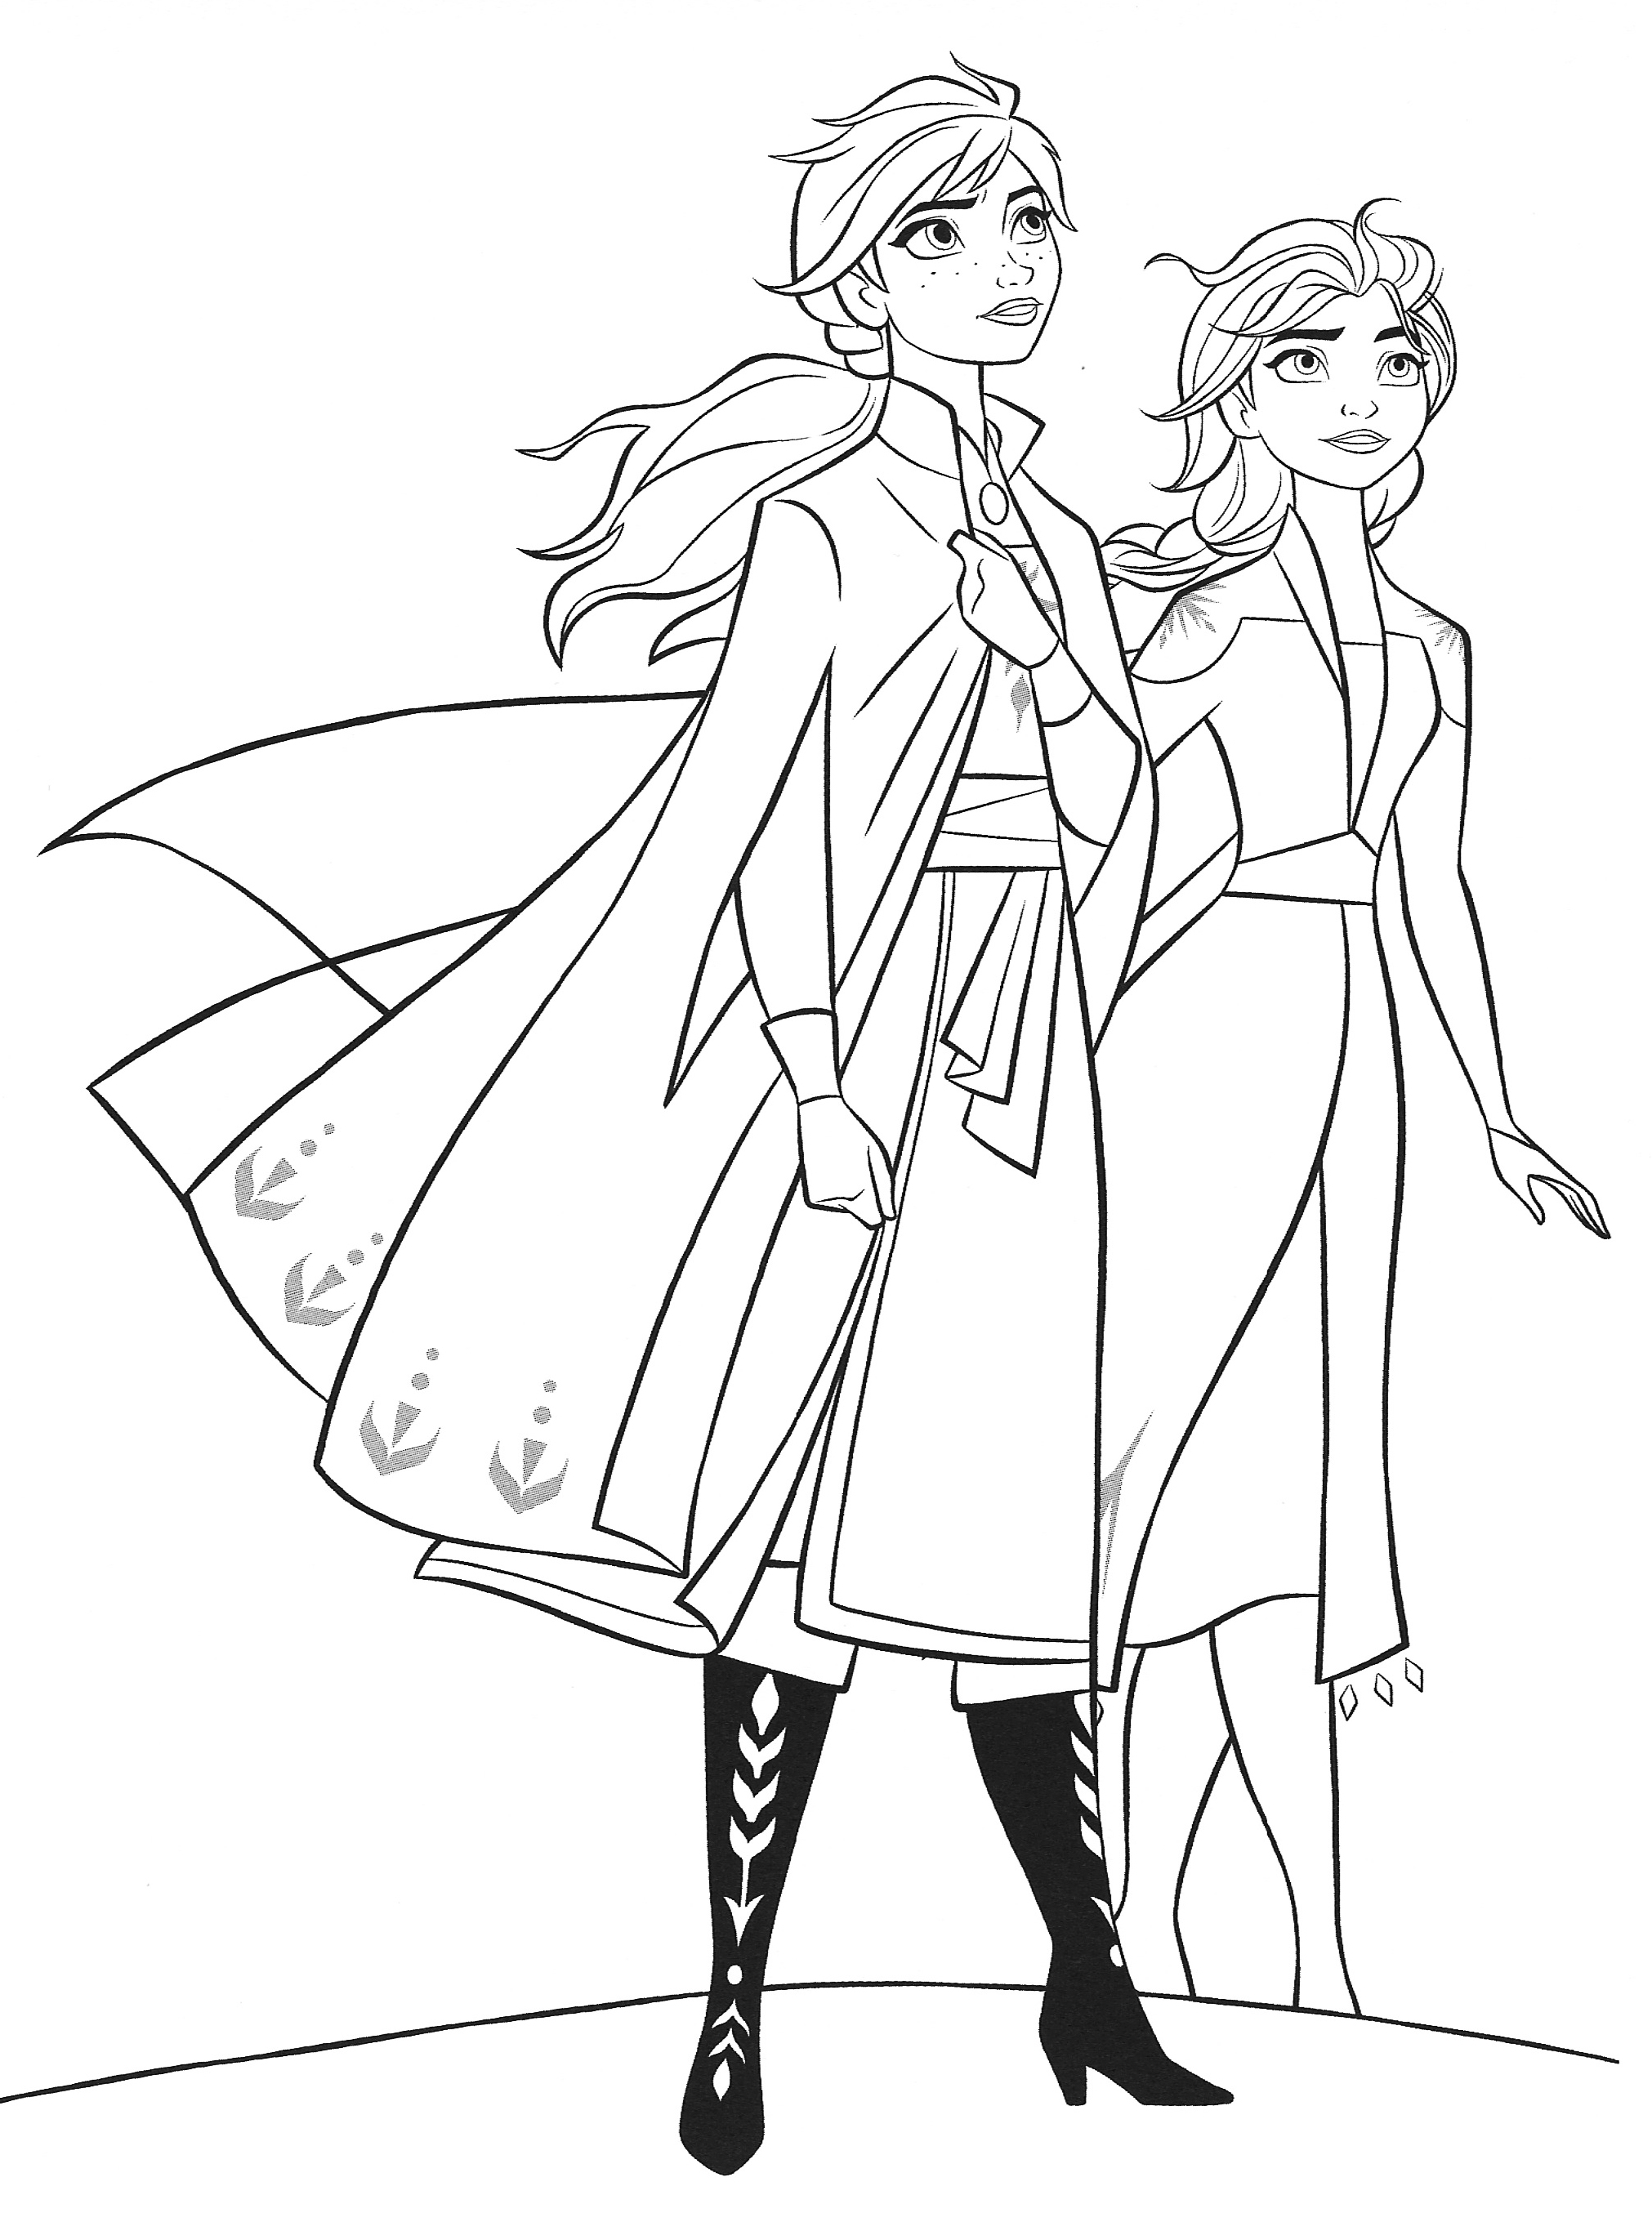 Frozen 18 Elsa and Anna coloring pages   YouLoveIt.com